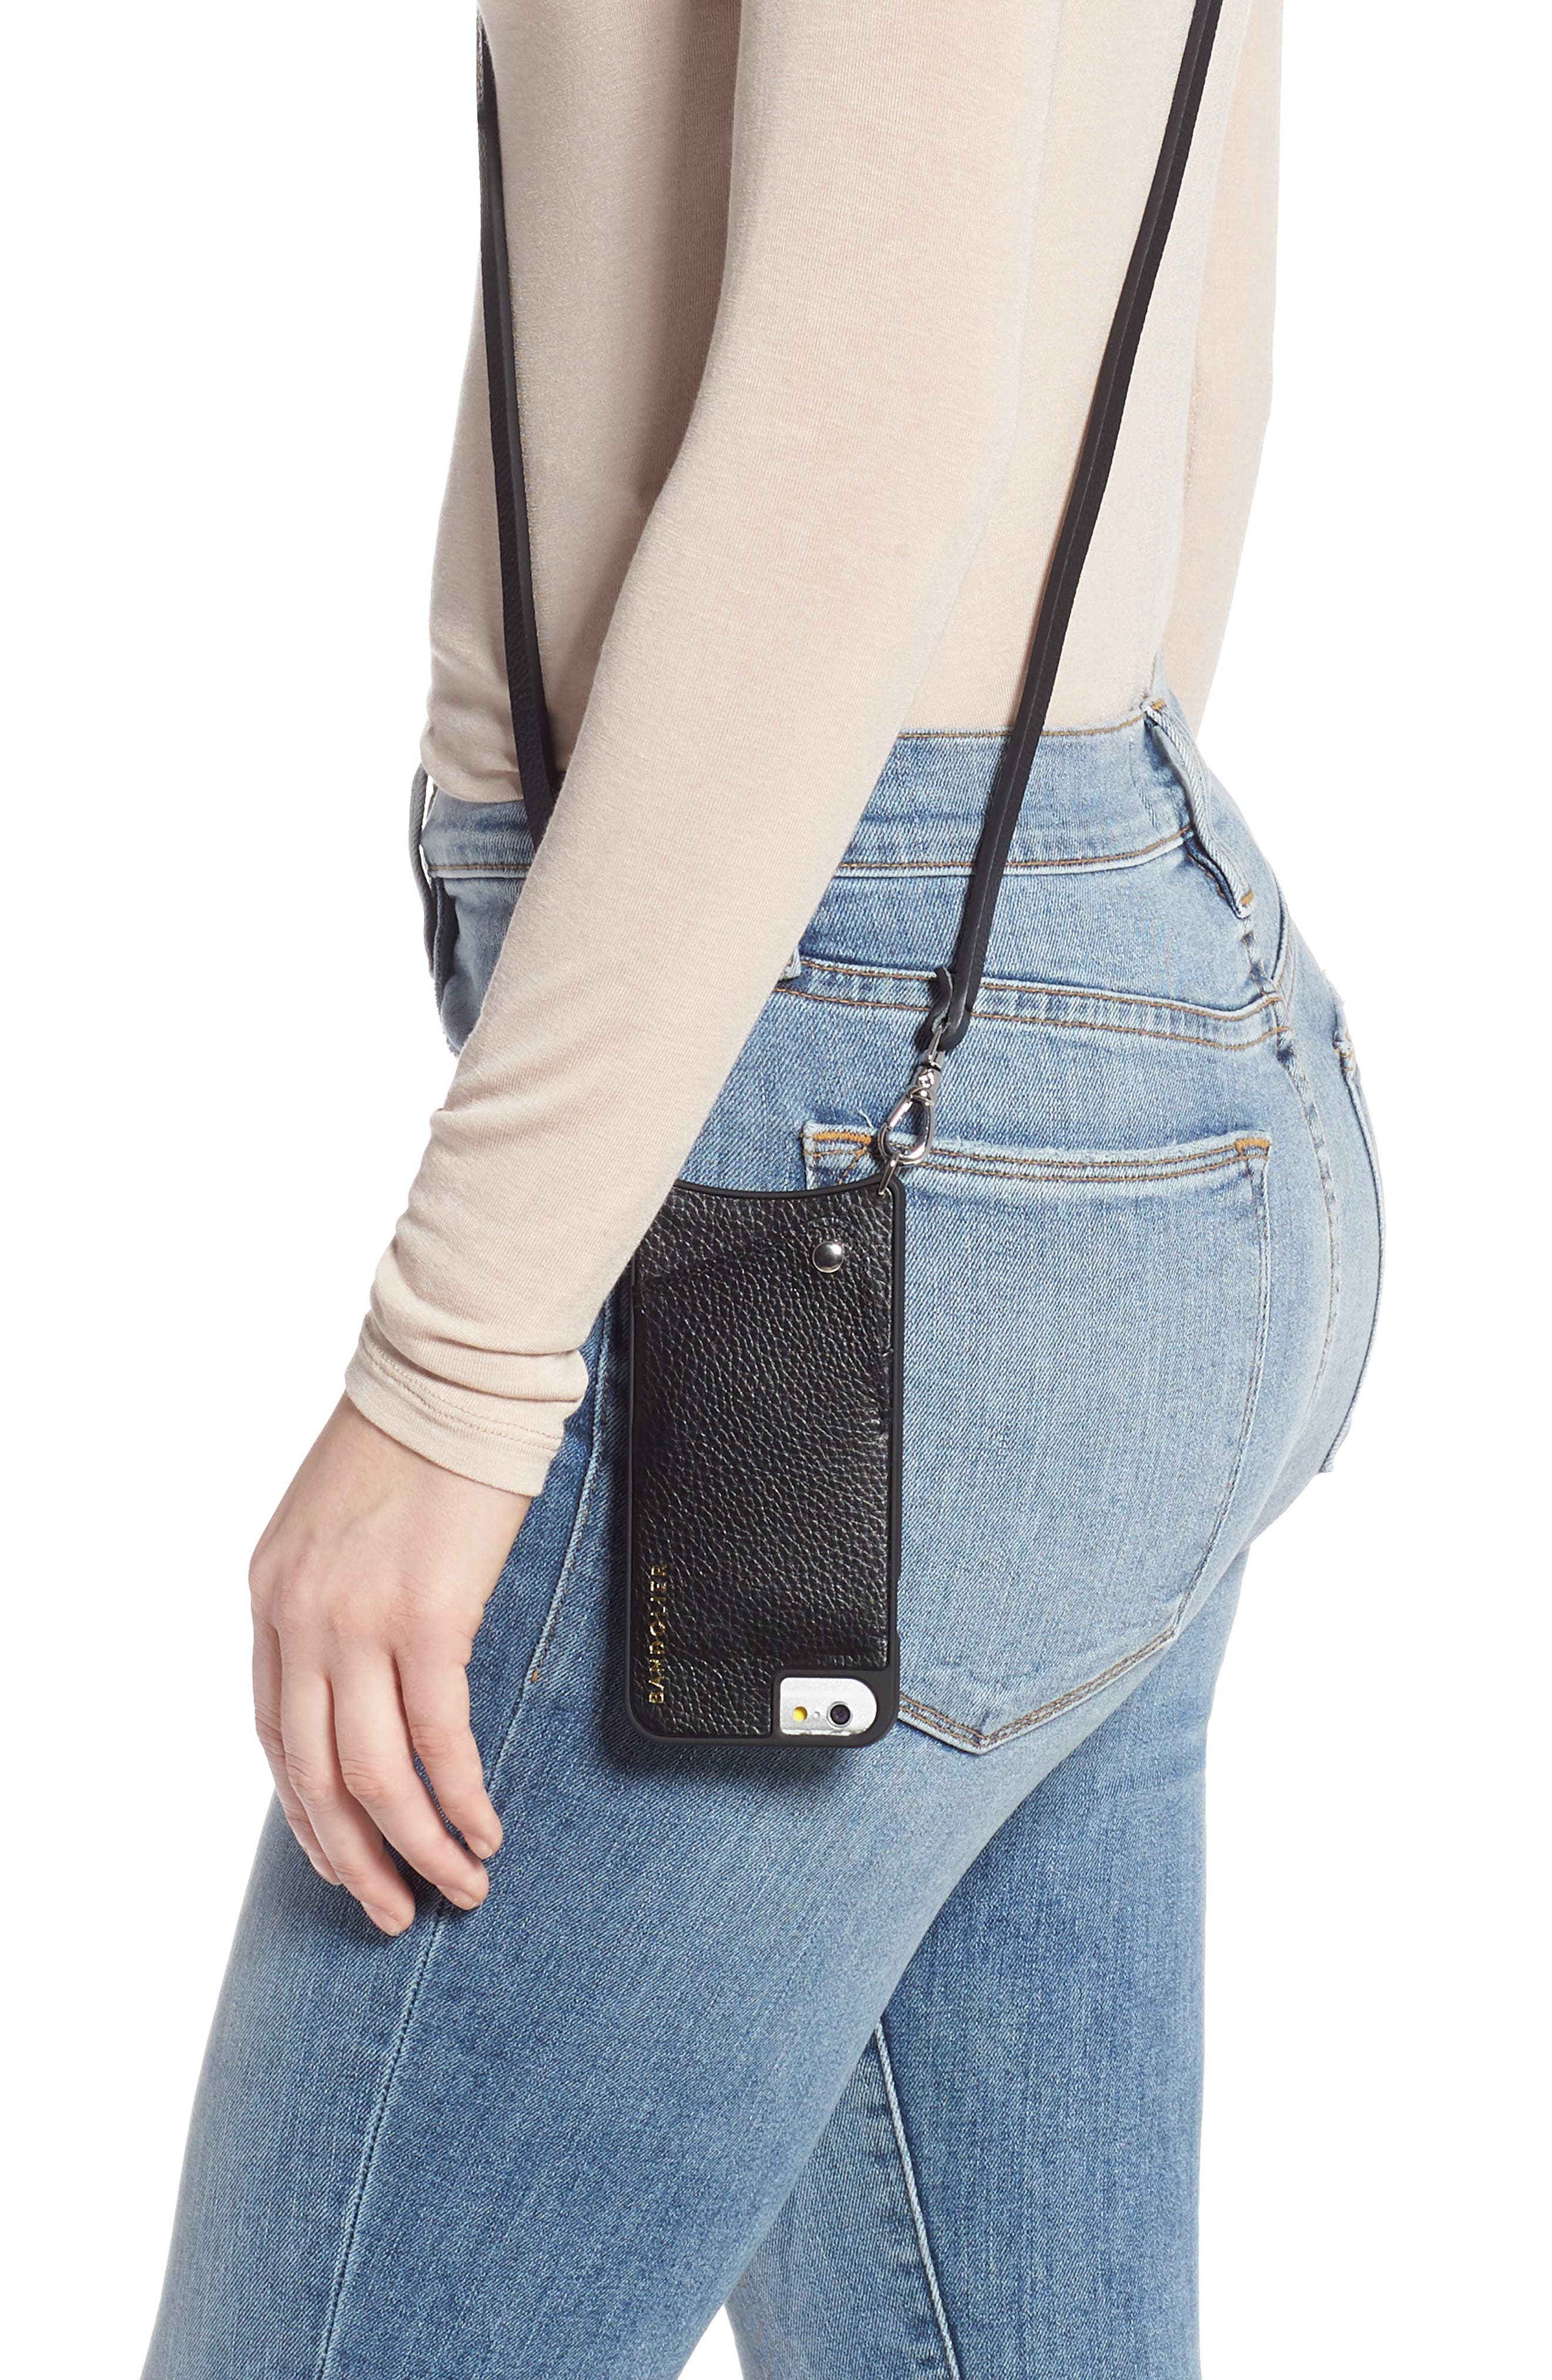 BANDOLIER,                             Emma iPhone X/Xs/Xs Max & XR Crossbody Case,                             Alternate thumbnail 2, color,                             BLACK/ SILVER